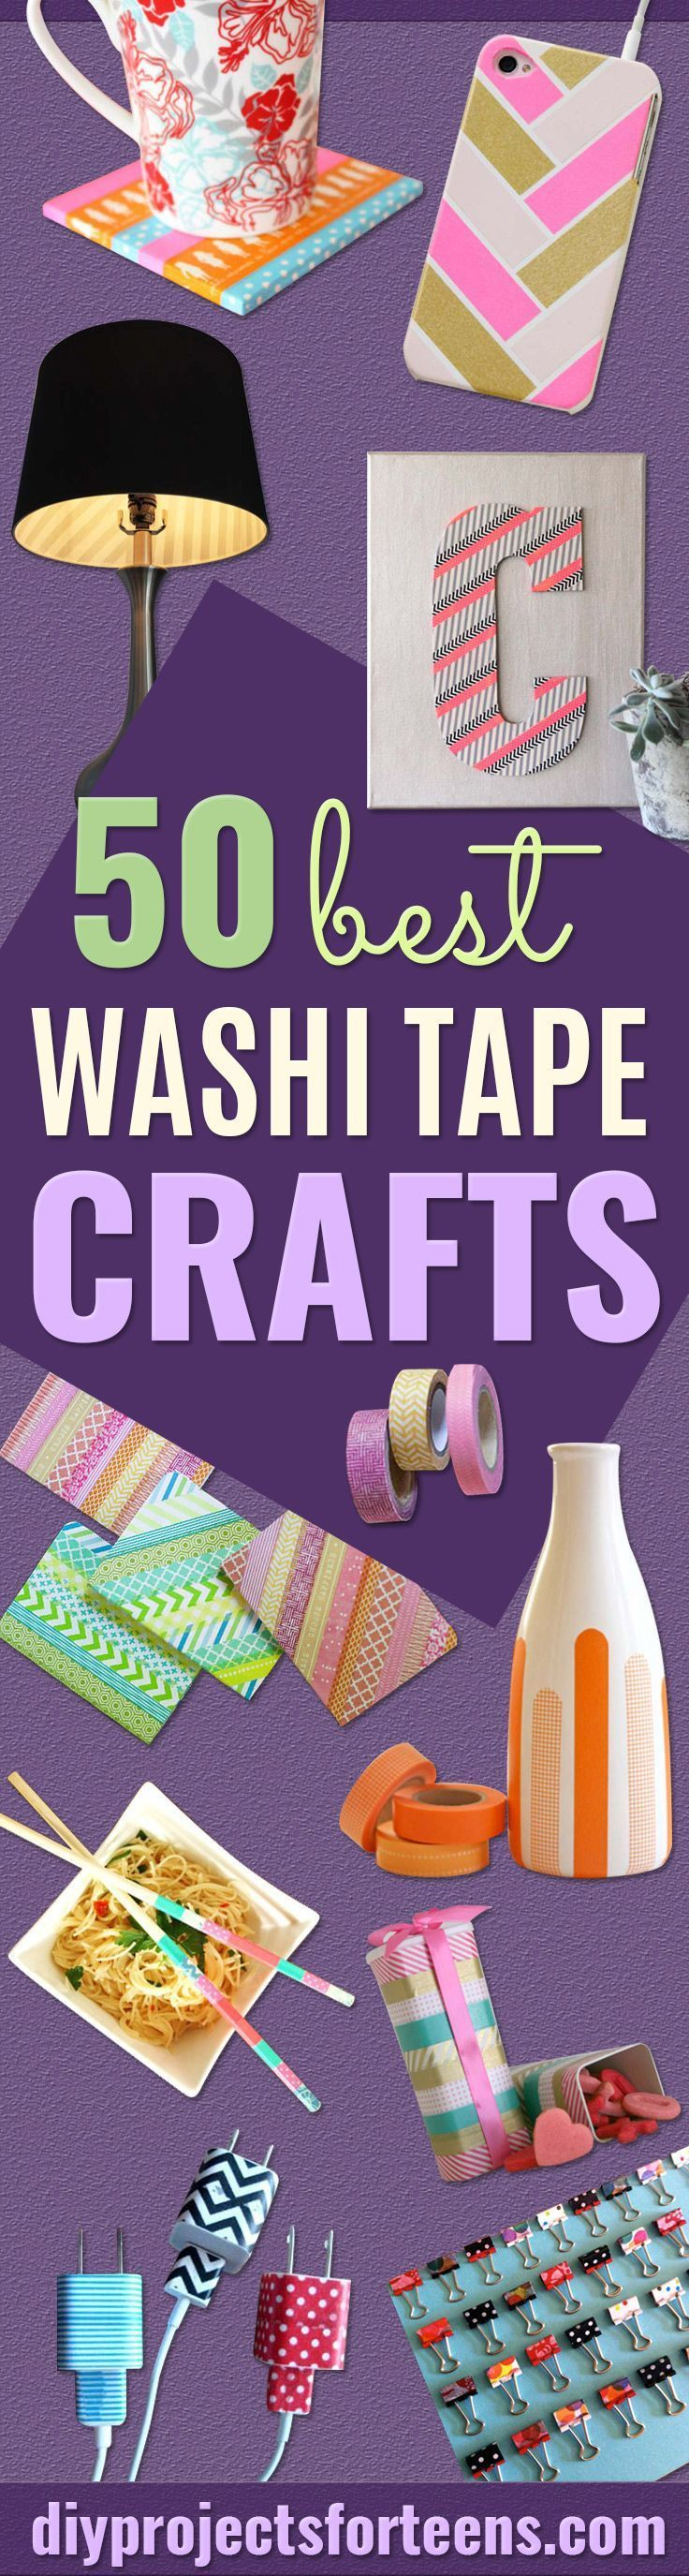 33 creative scrapbook ideas every crafter should know diy projects - Best 25 Diy Homemade Washi Tape Ideas On Pinterest Diy Party Bunting Homemade Party Decorations And Washi Tape Room Diy